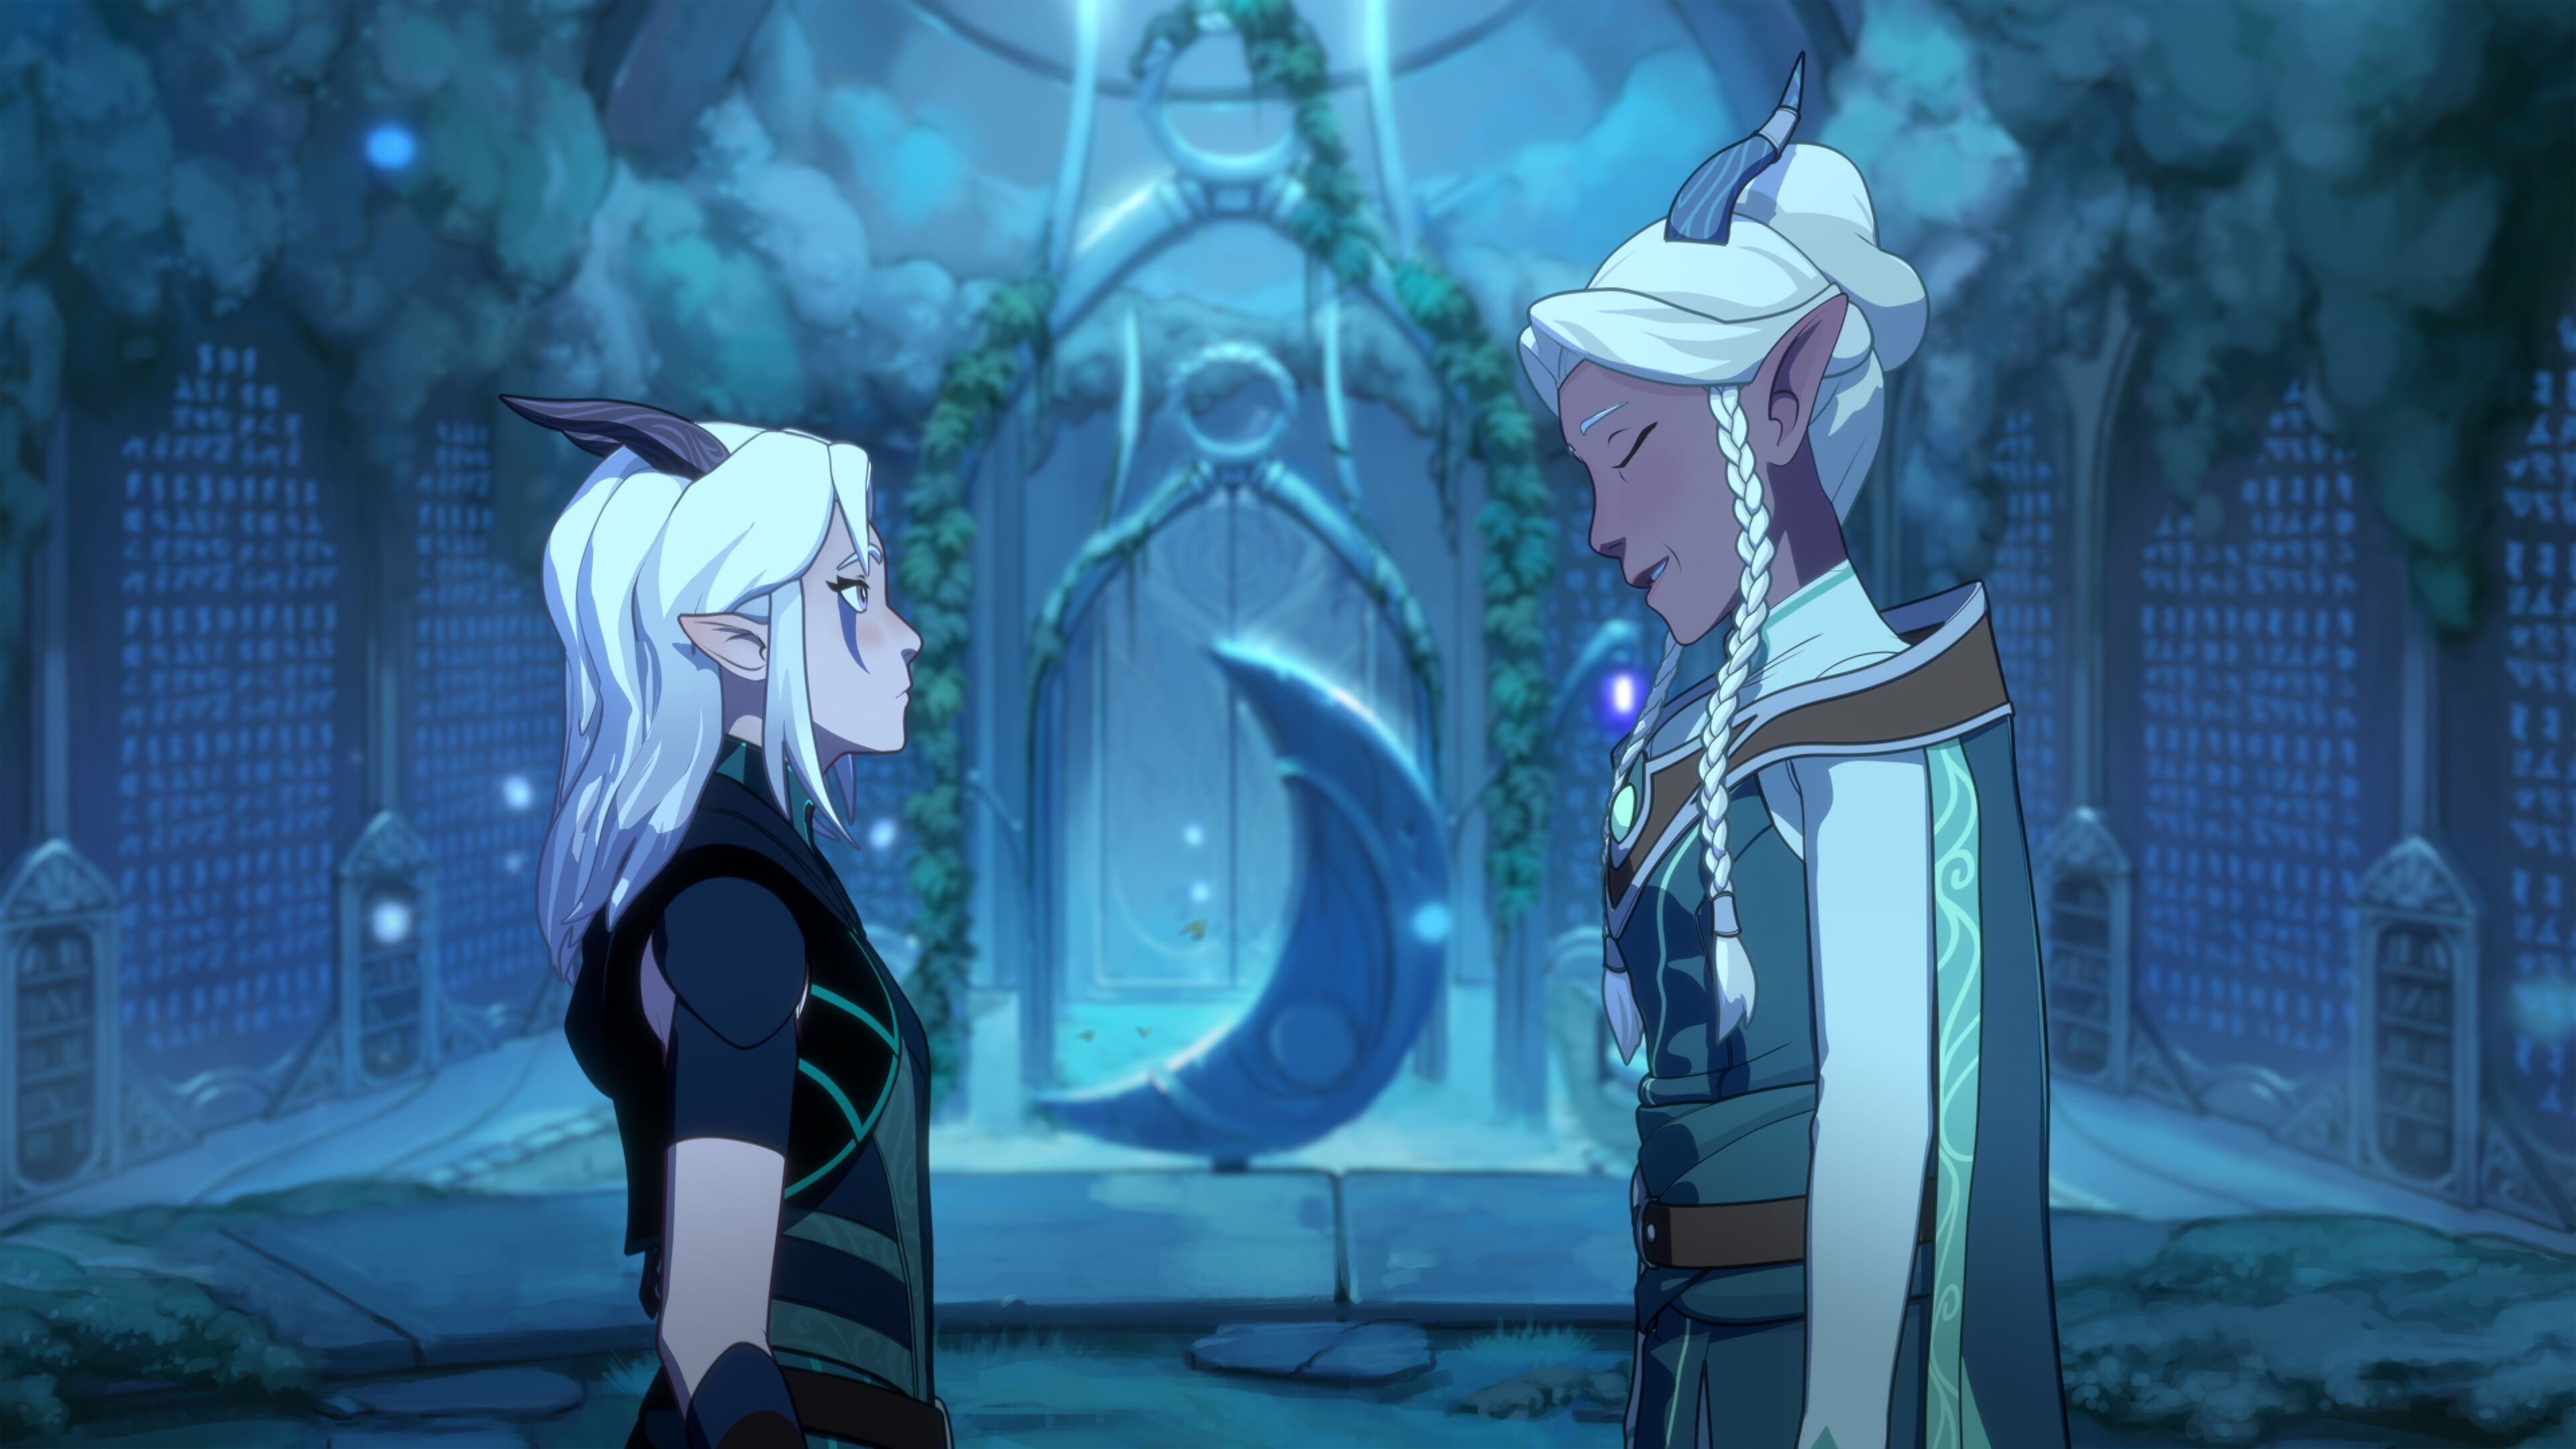 Netflix's The Dragon Prince Season 2 pushes the envelope in children's fantasy